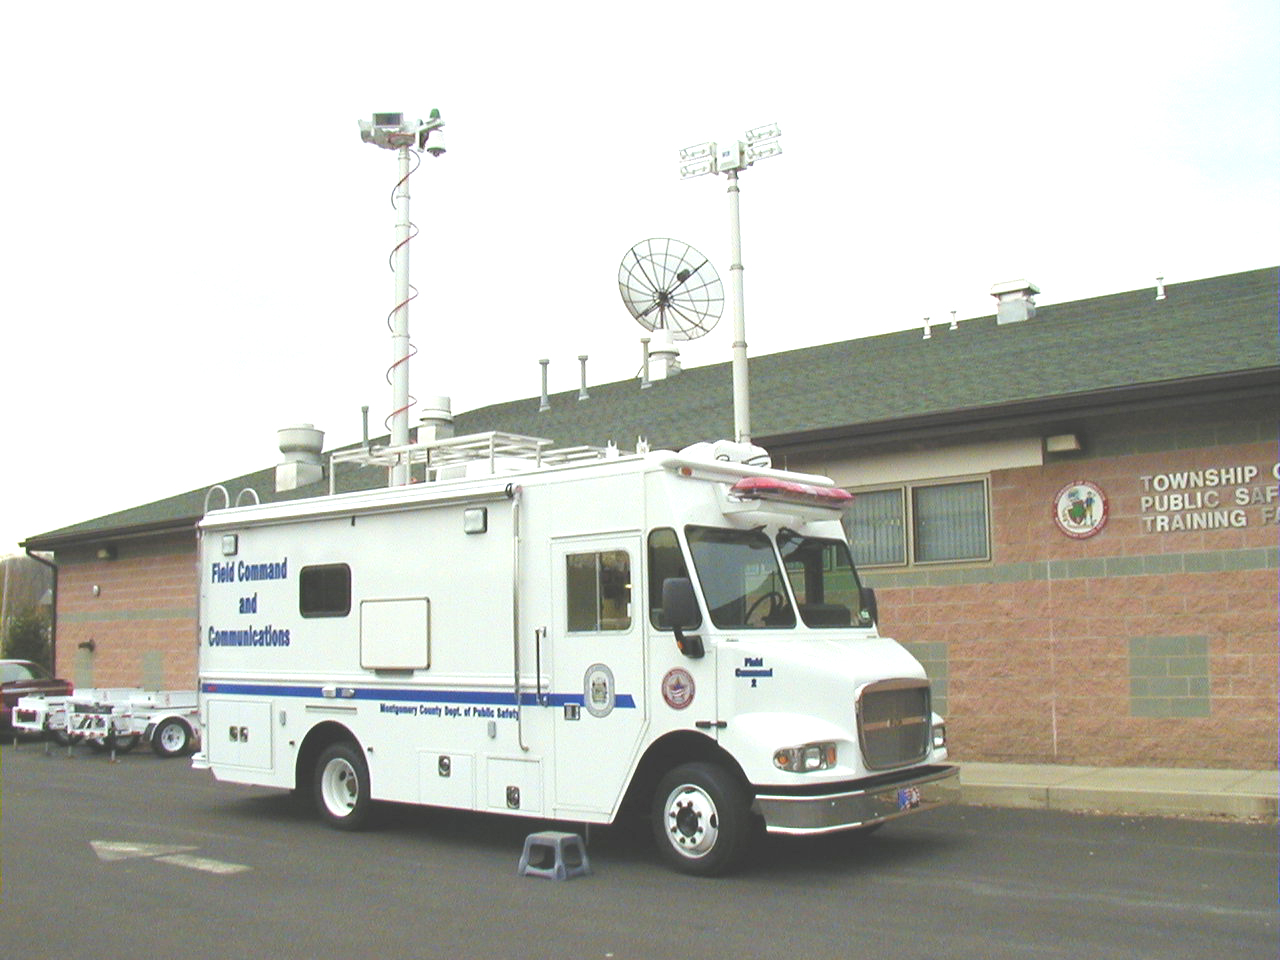 Image of Mobile Communications Van in Parking Lot